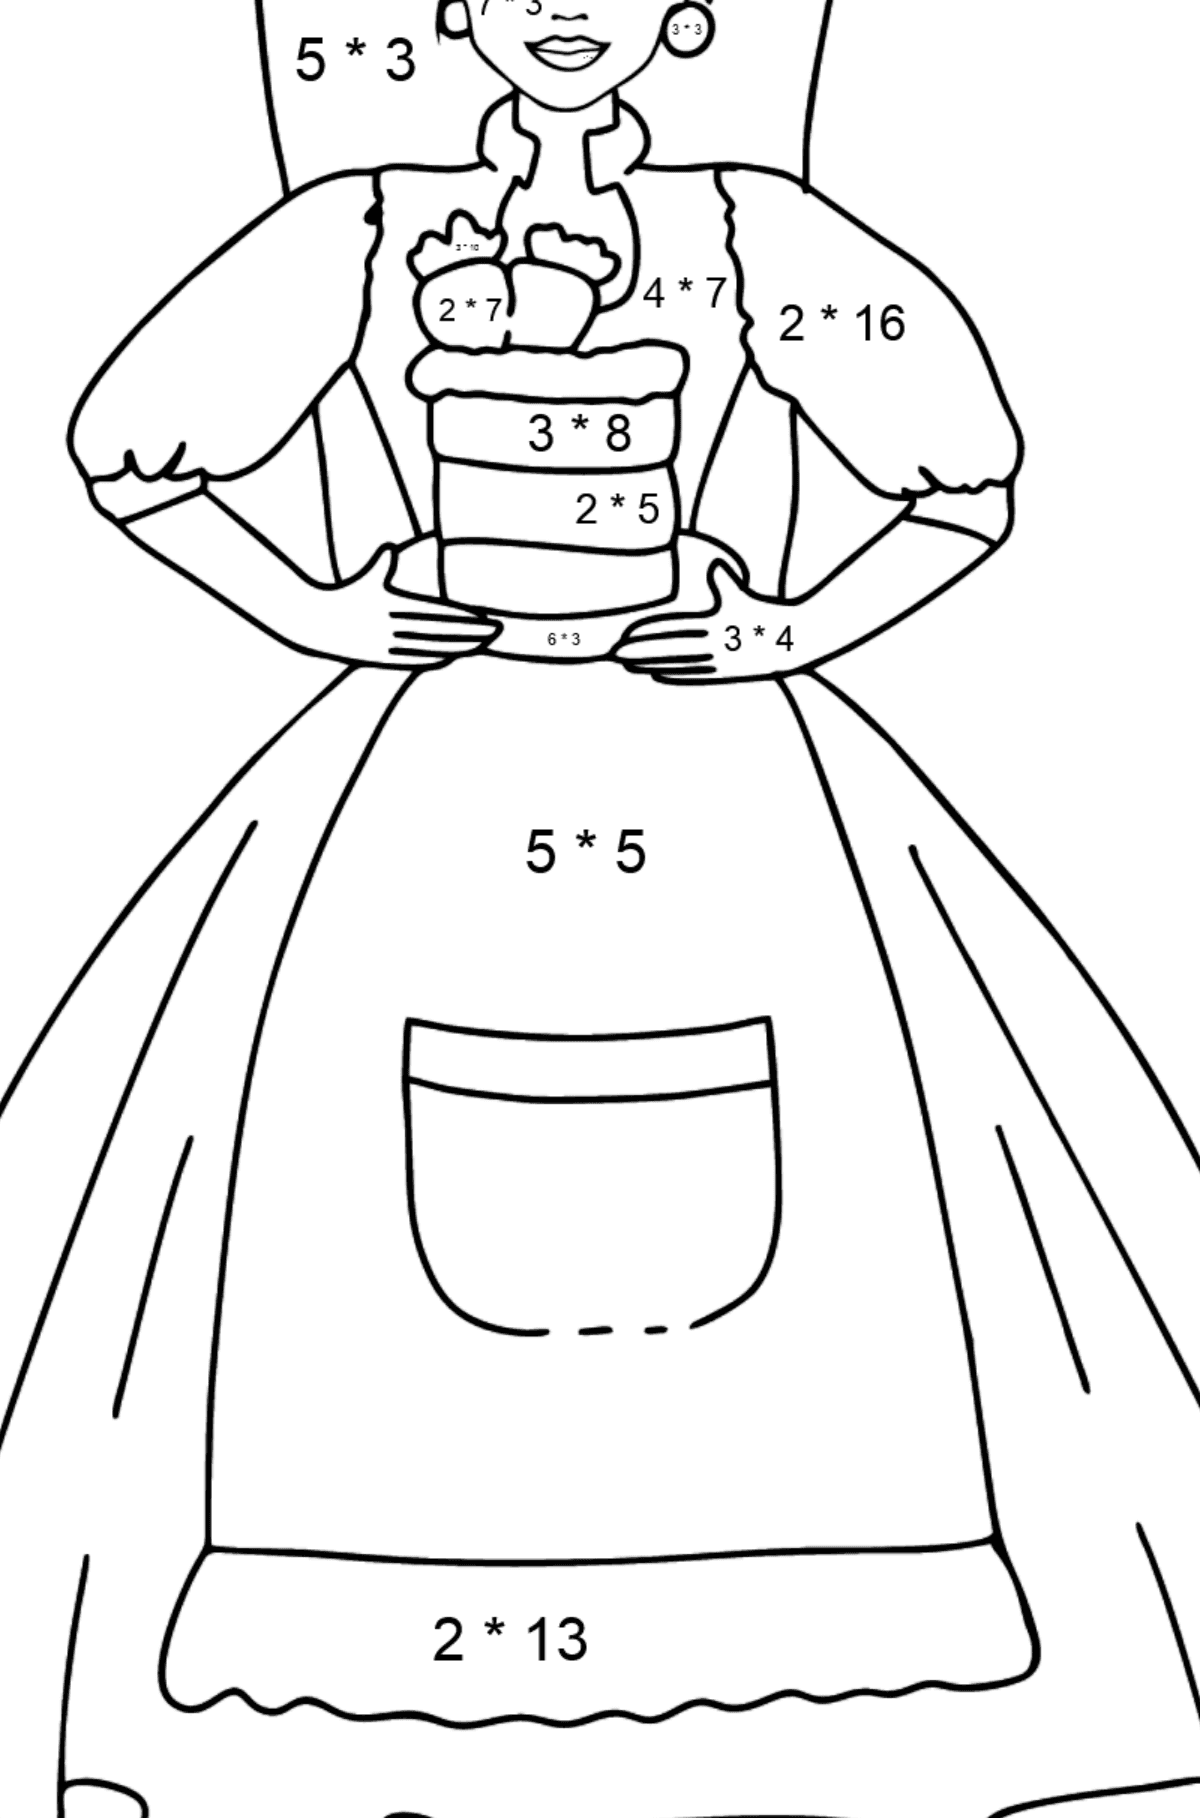 Barbie Doll and Cake coloring page - Math Coloring - Multiplication for Kids